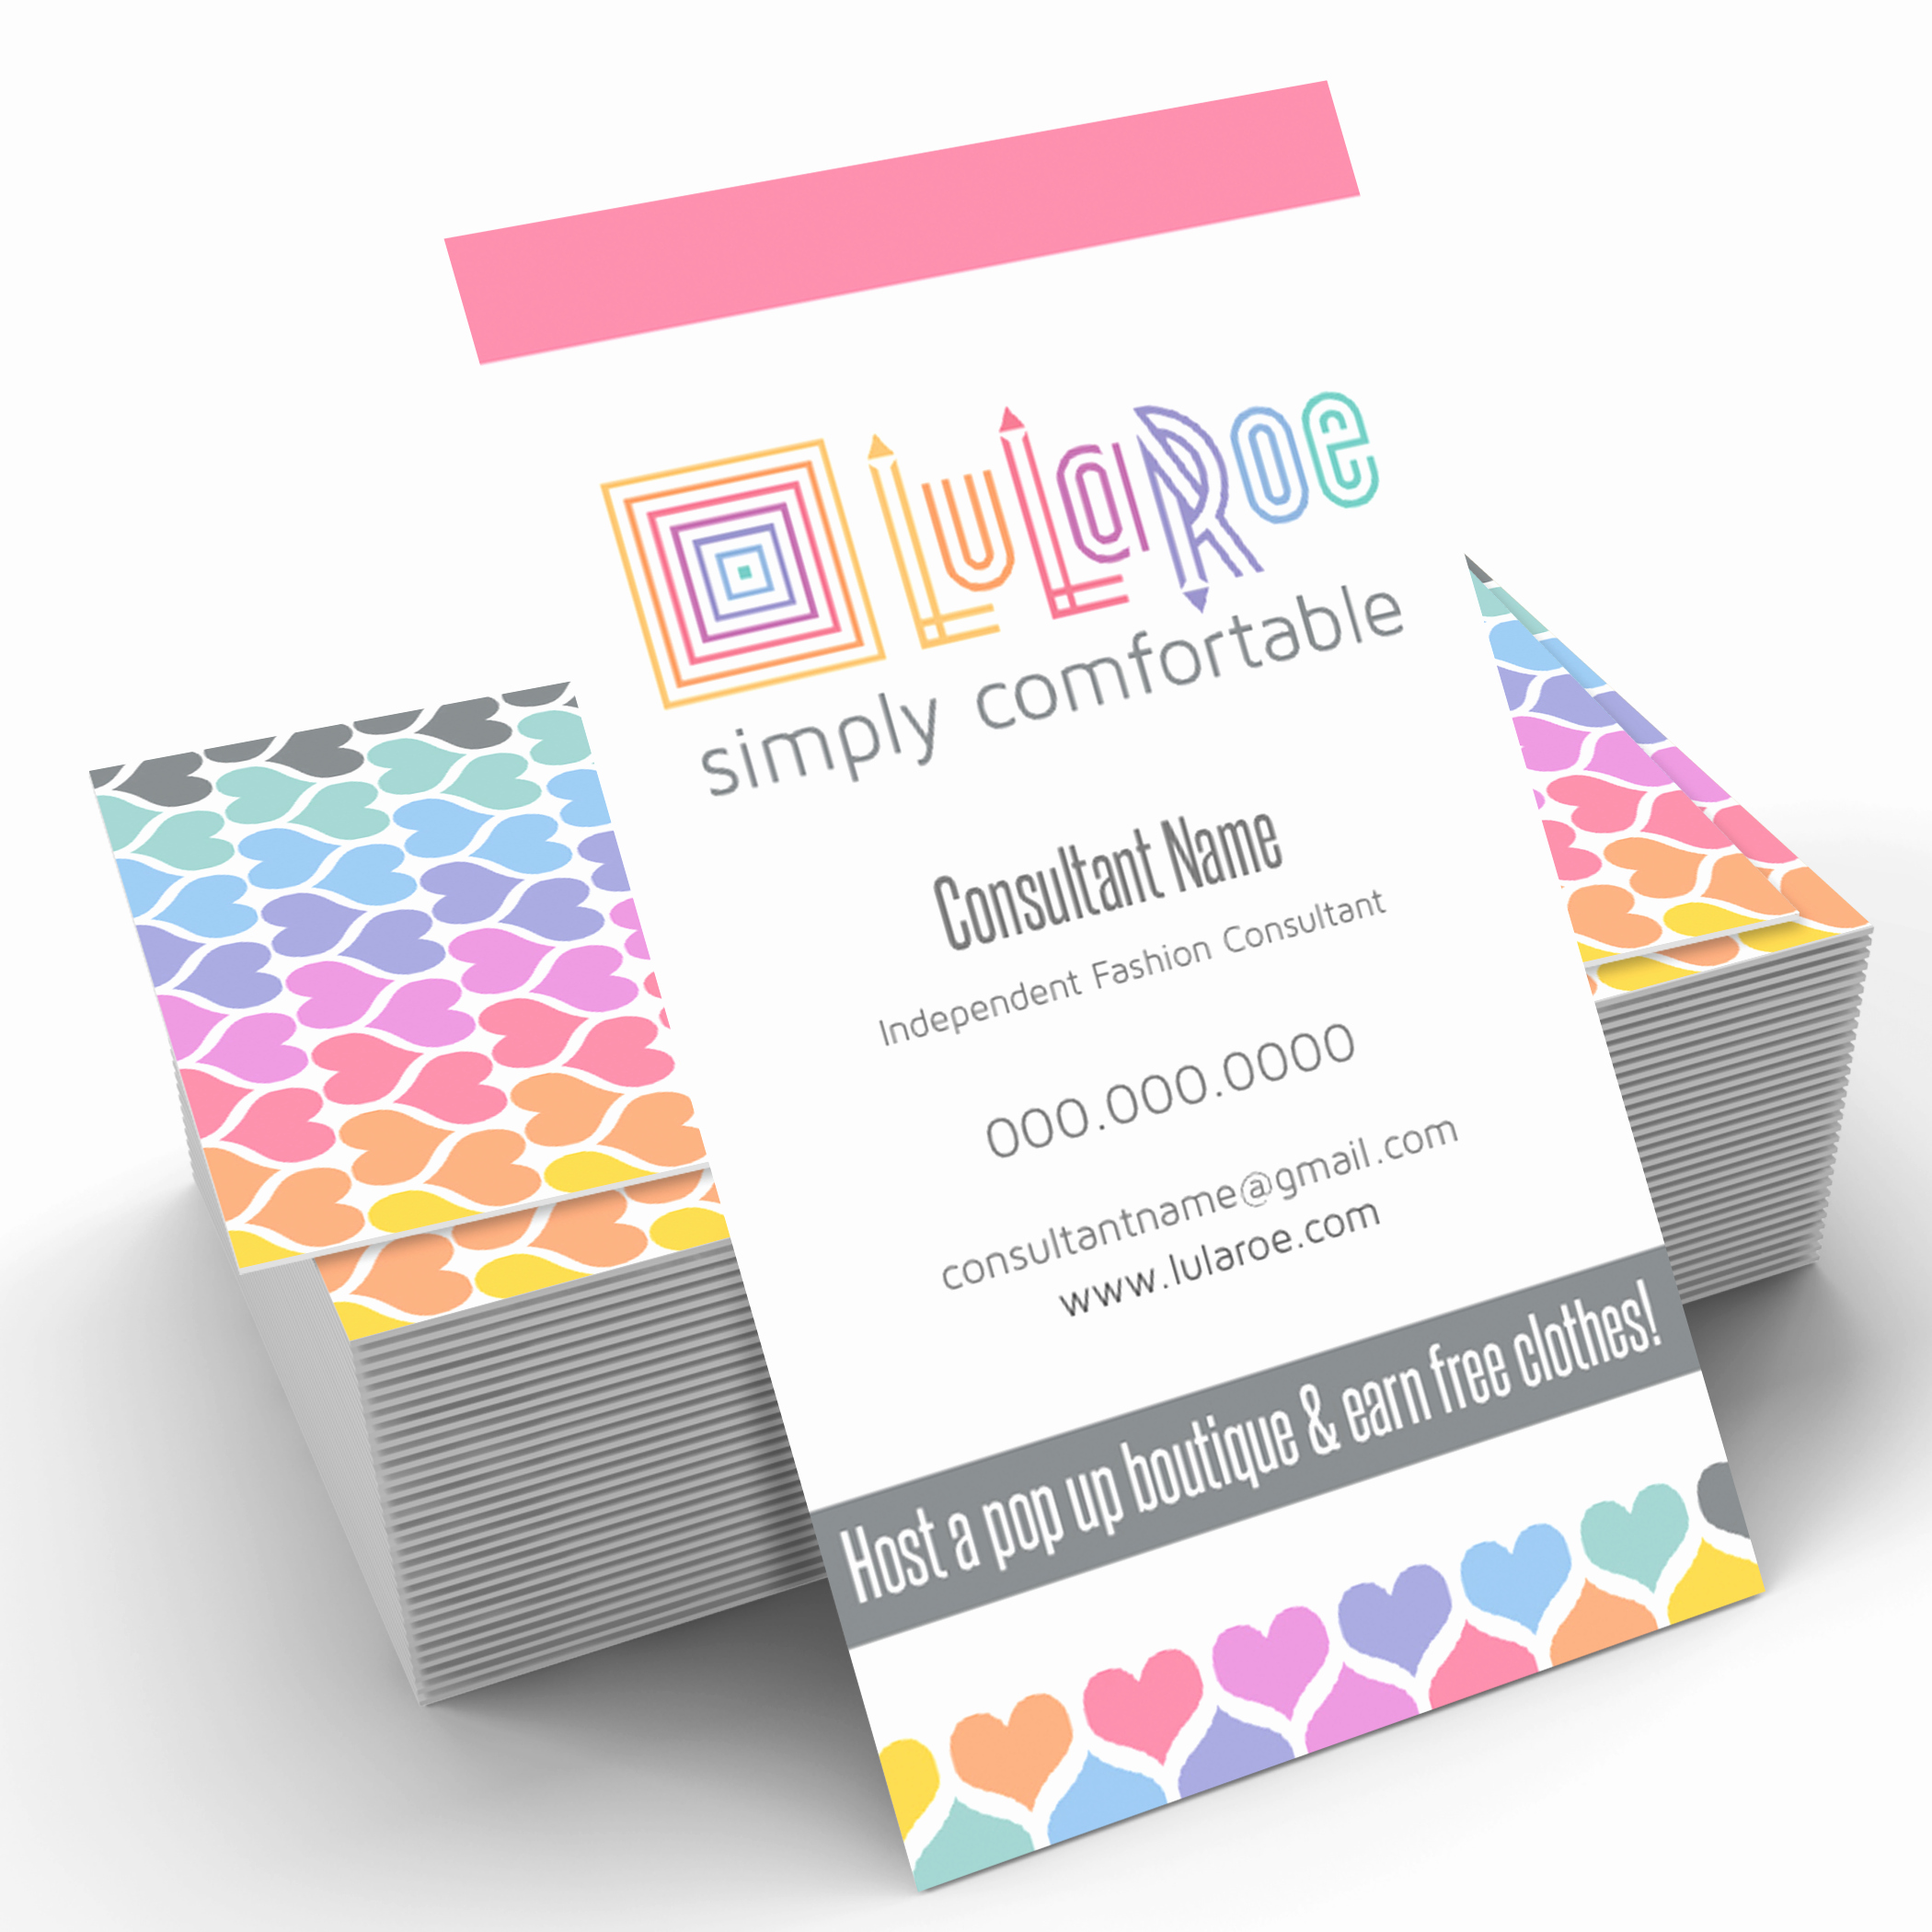 Lularoe Business Card Template Elegant Lularoe Business Card Vertical Heart Pattern